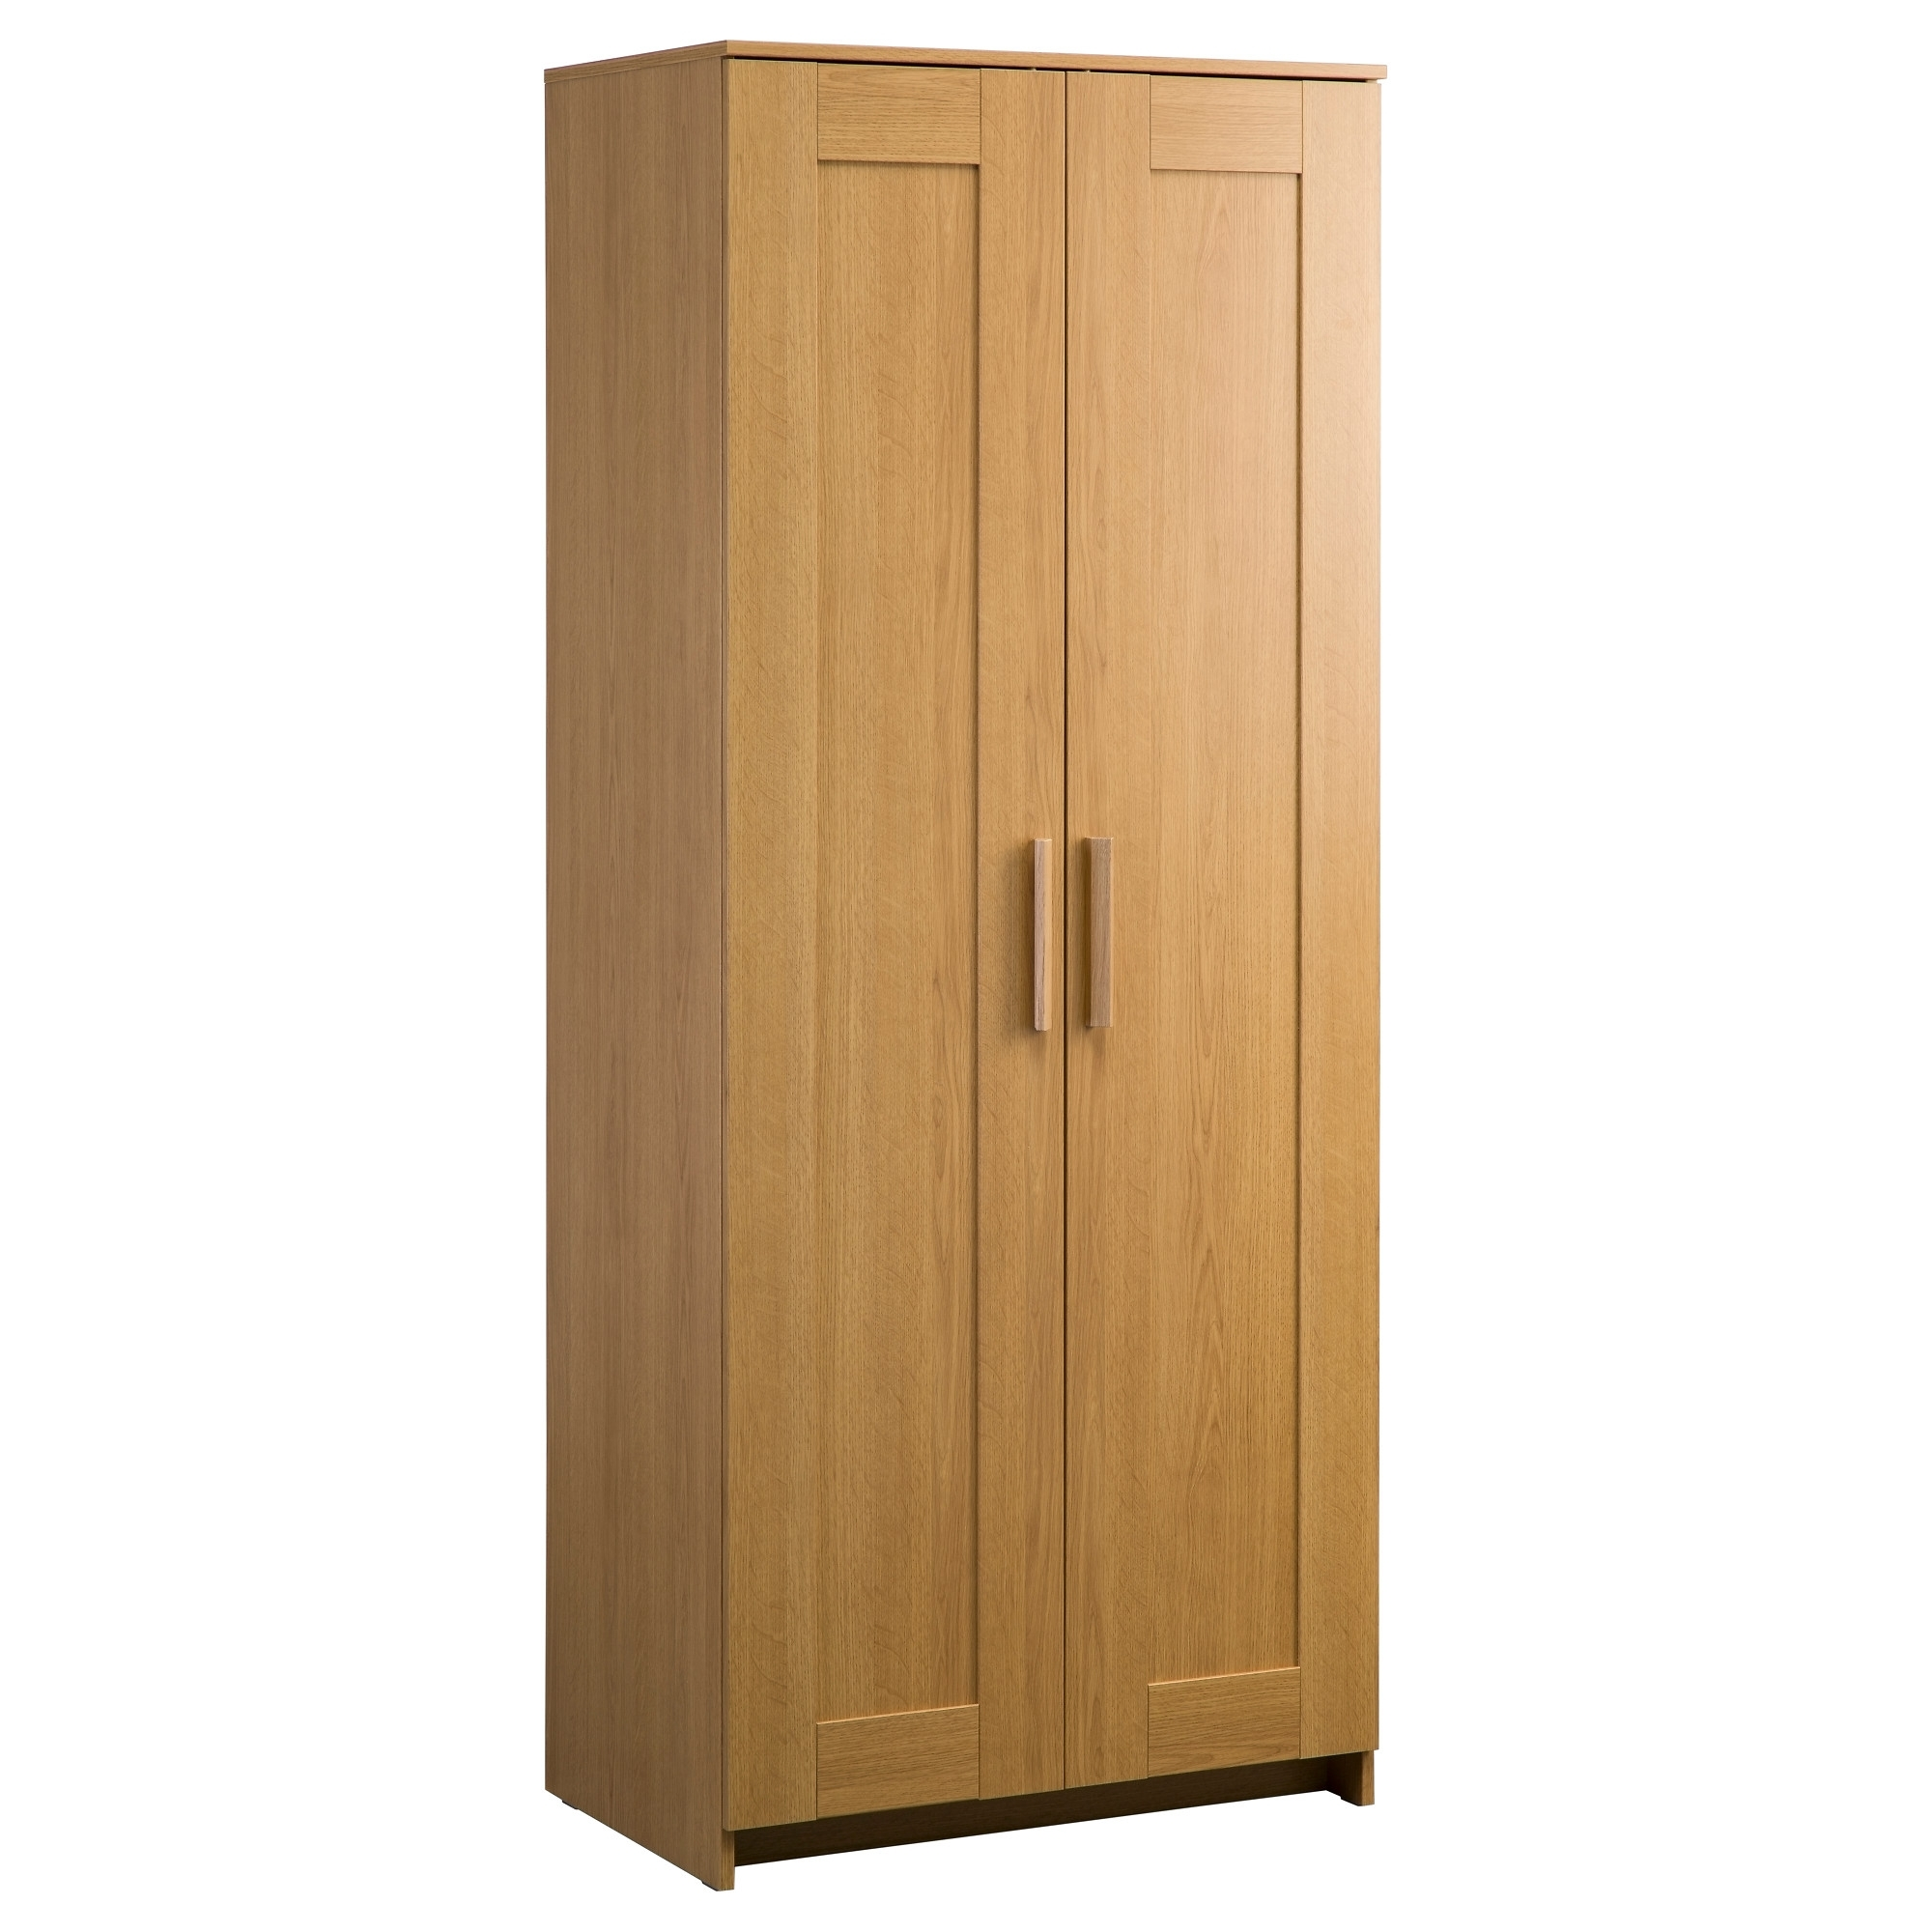 Most Recent Cheap 2 Door Wardrobes Pertaining To Brimnes Wardrobe With 3 Doors Oak Effect 117X190 Cm – Ikea (View 13 of 15)